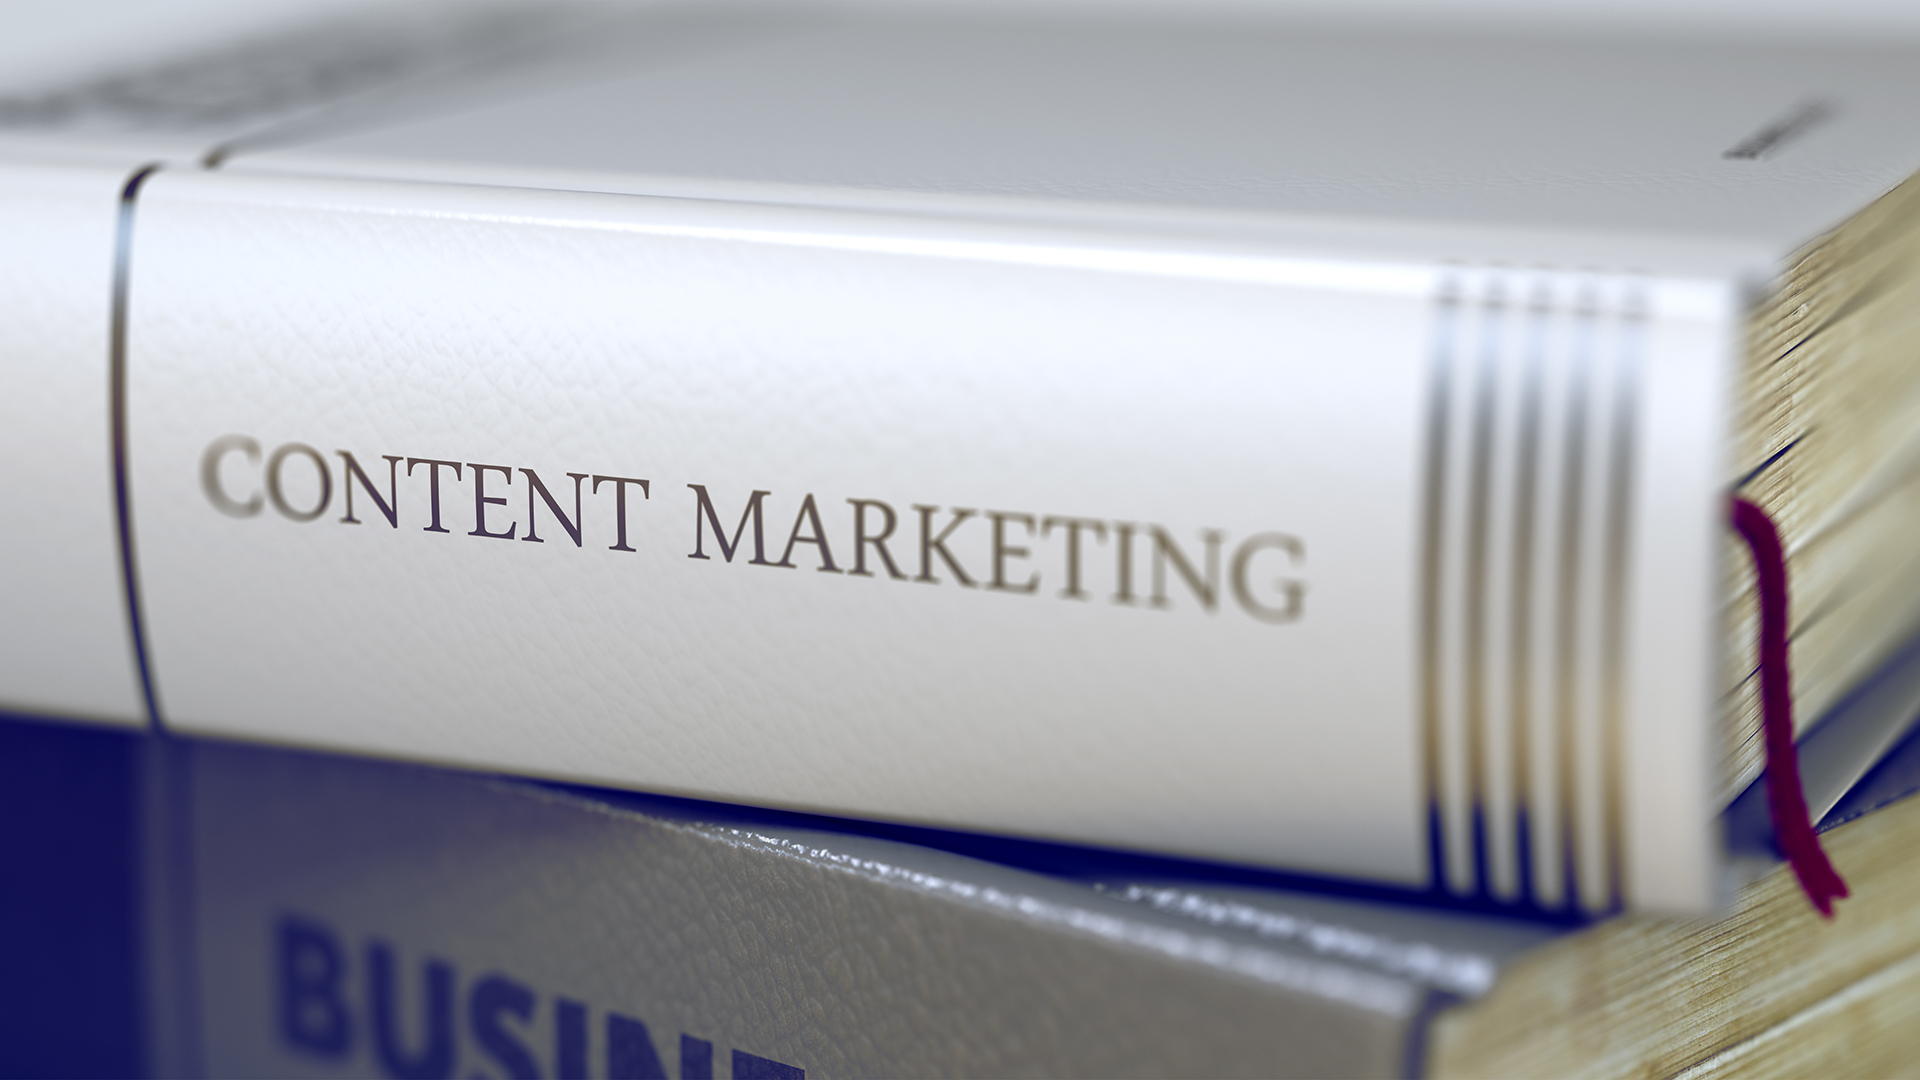 Content Marketing - Writing for the internet in 2017